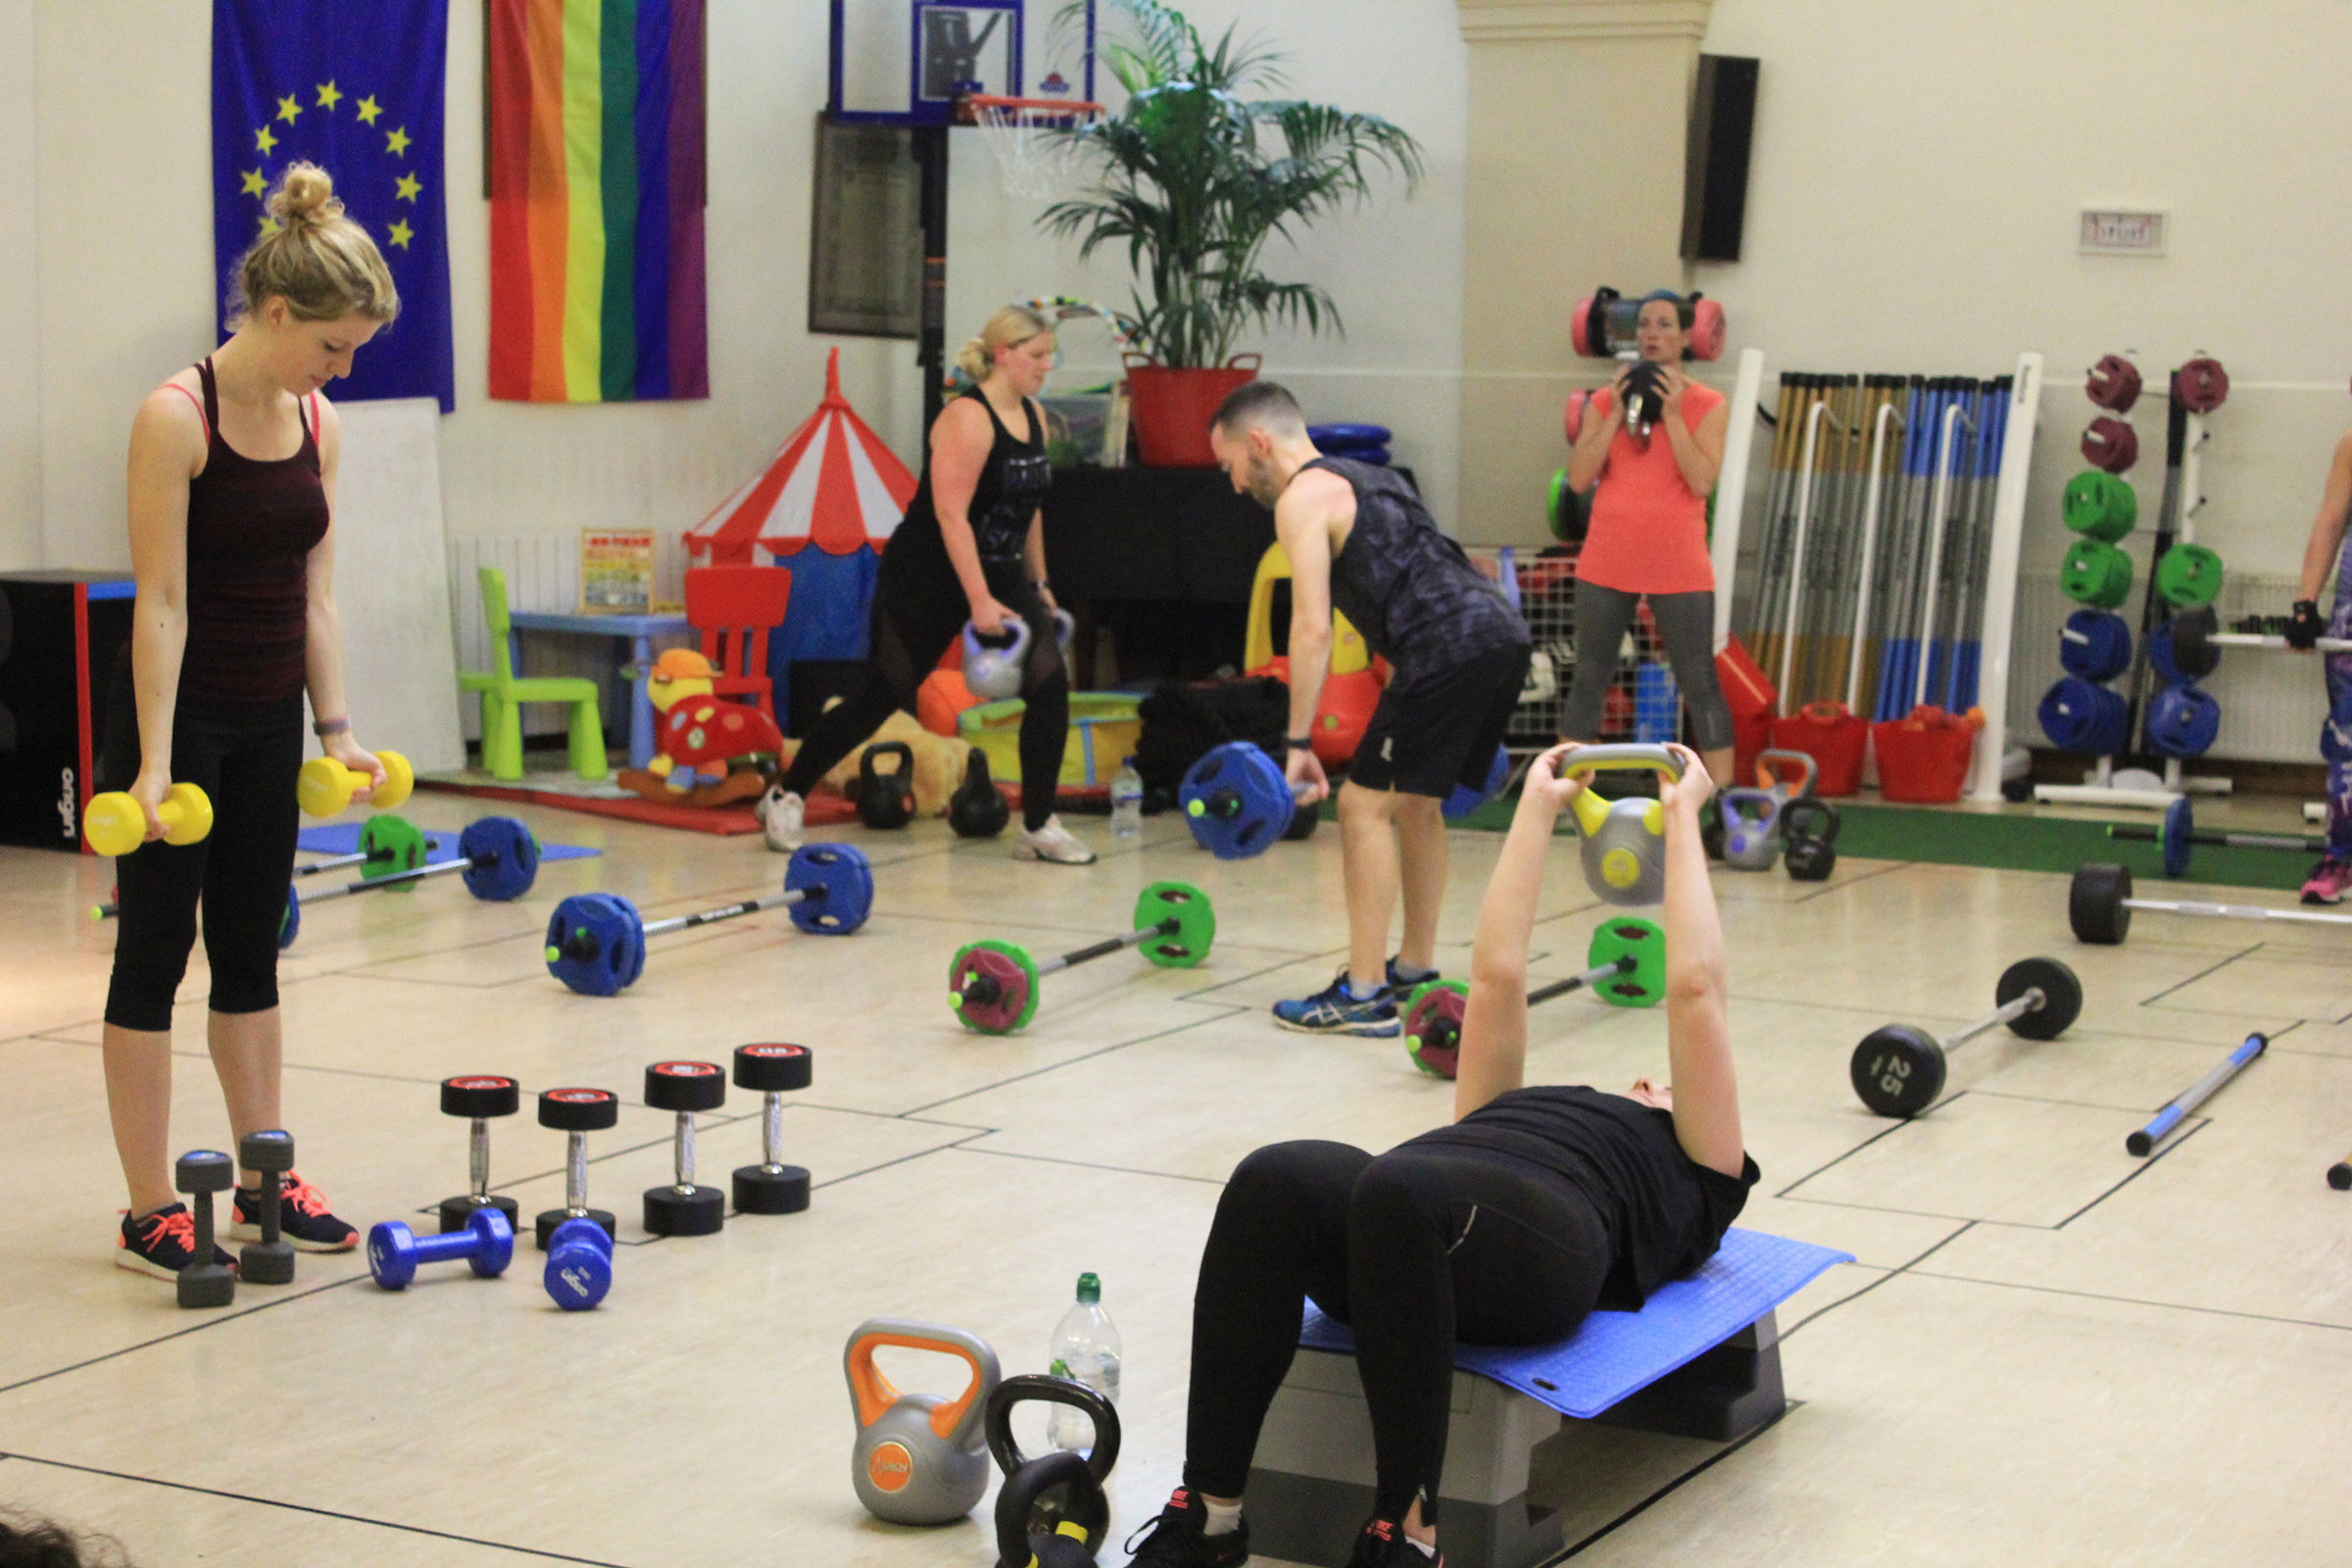 Projekt 42 is offering free gym classes for trans and non-binary people in the UK